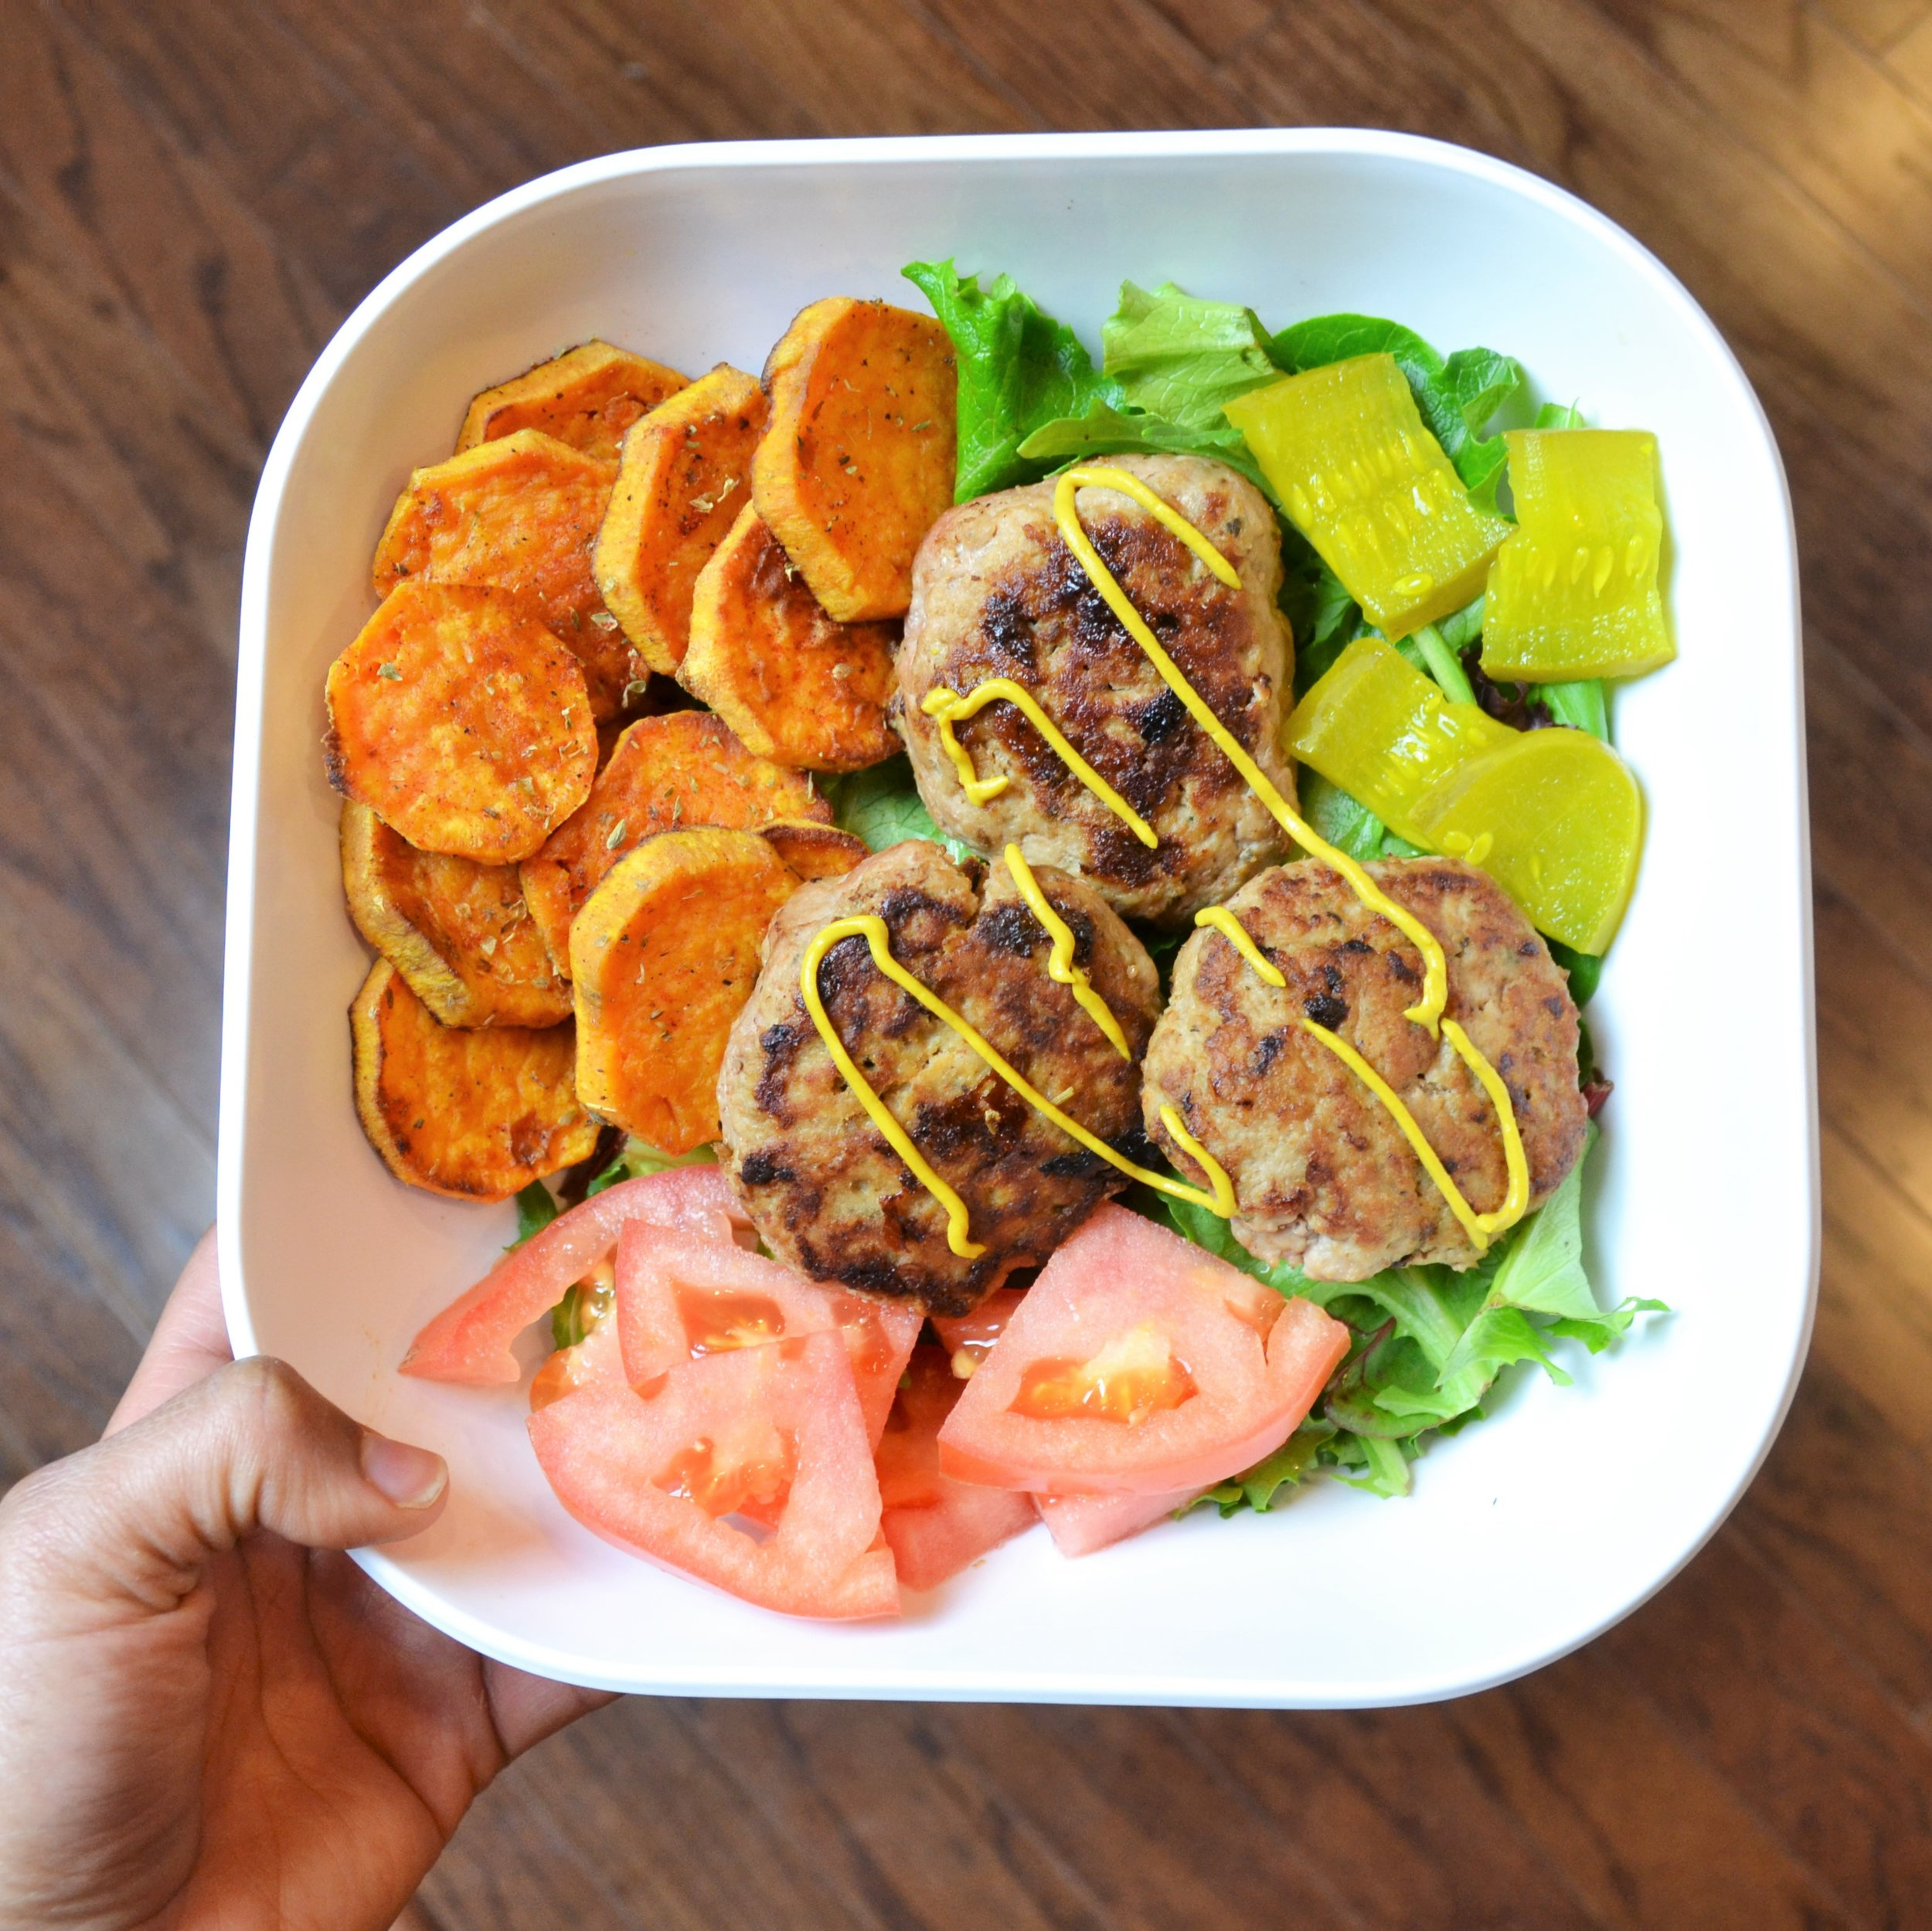 Fitness Lifestyle Blog Just Being Britt Brittany Jenkins Fitness Blog Influencer Turkey Burger Bowl